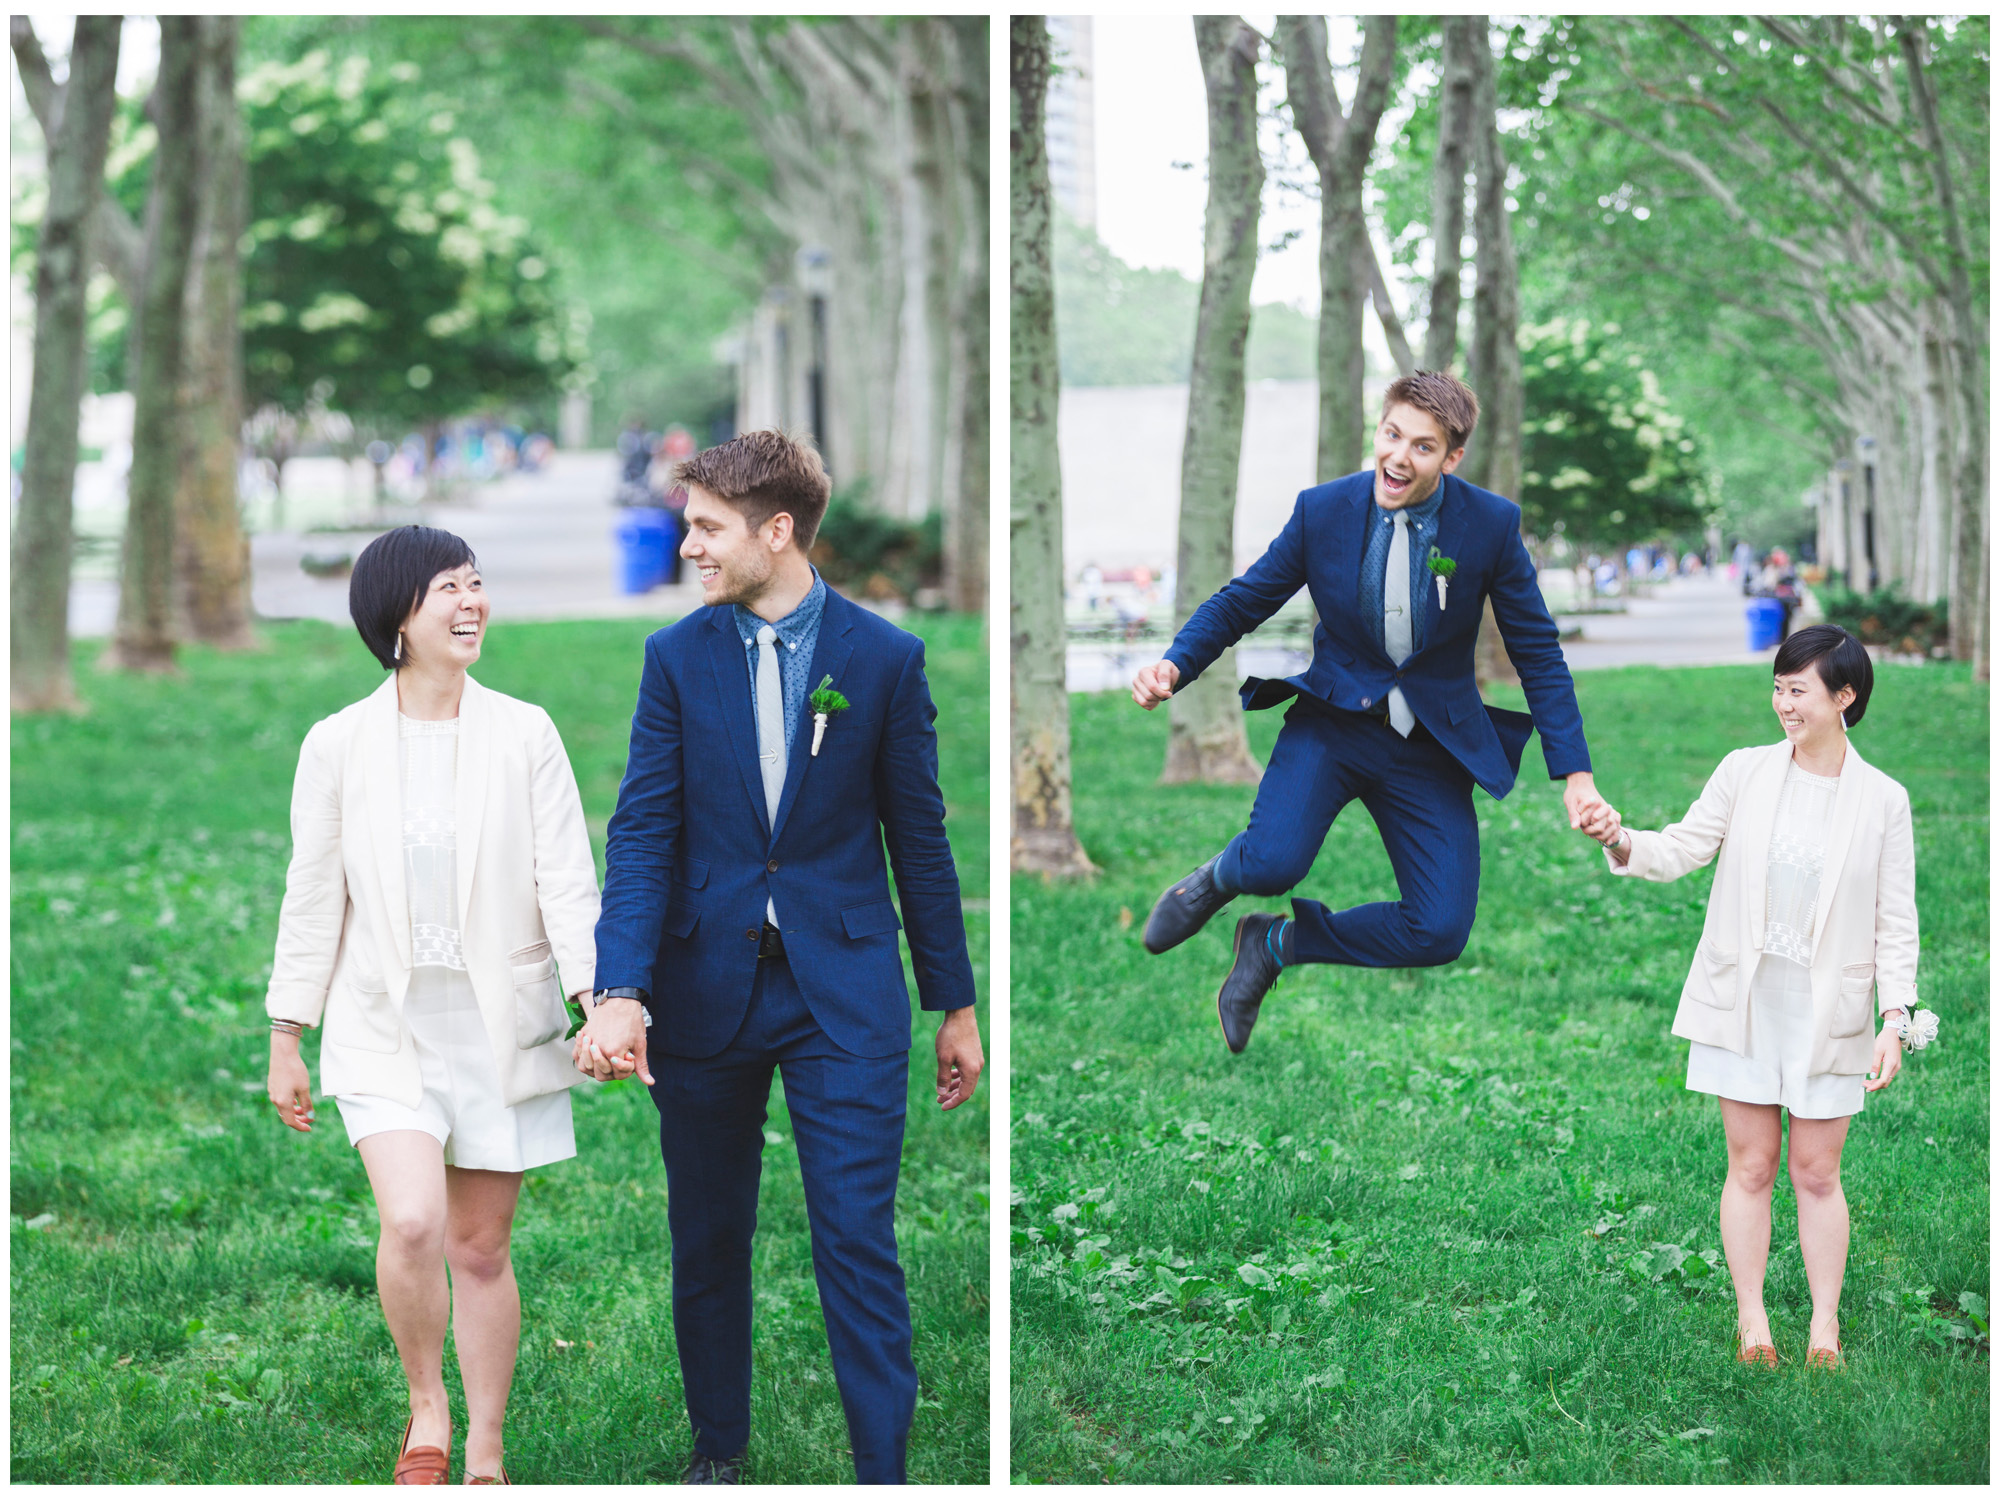 A favourite wedding photograph of mine is the old heel click.